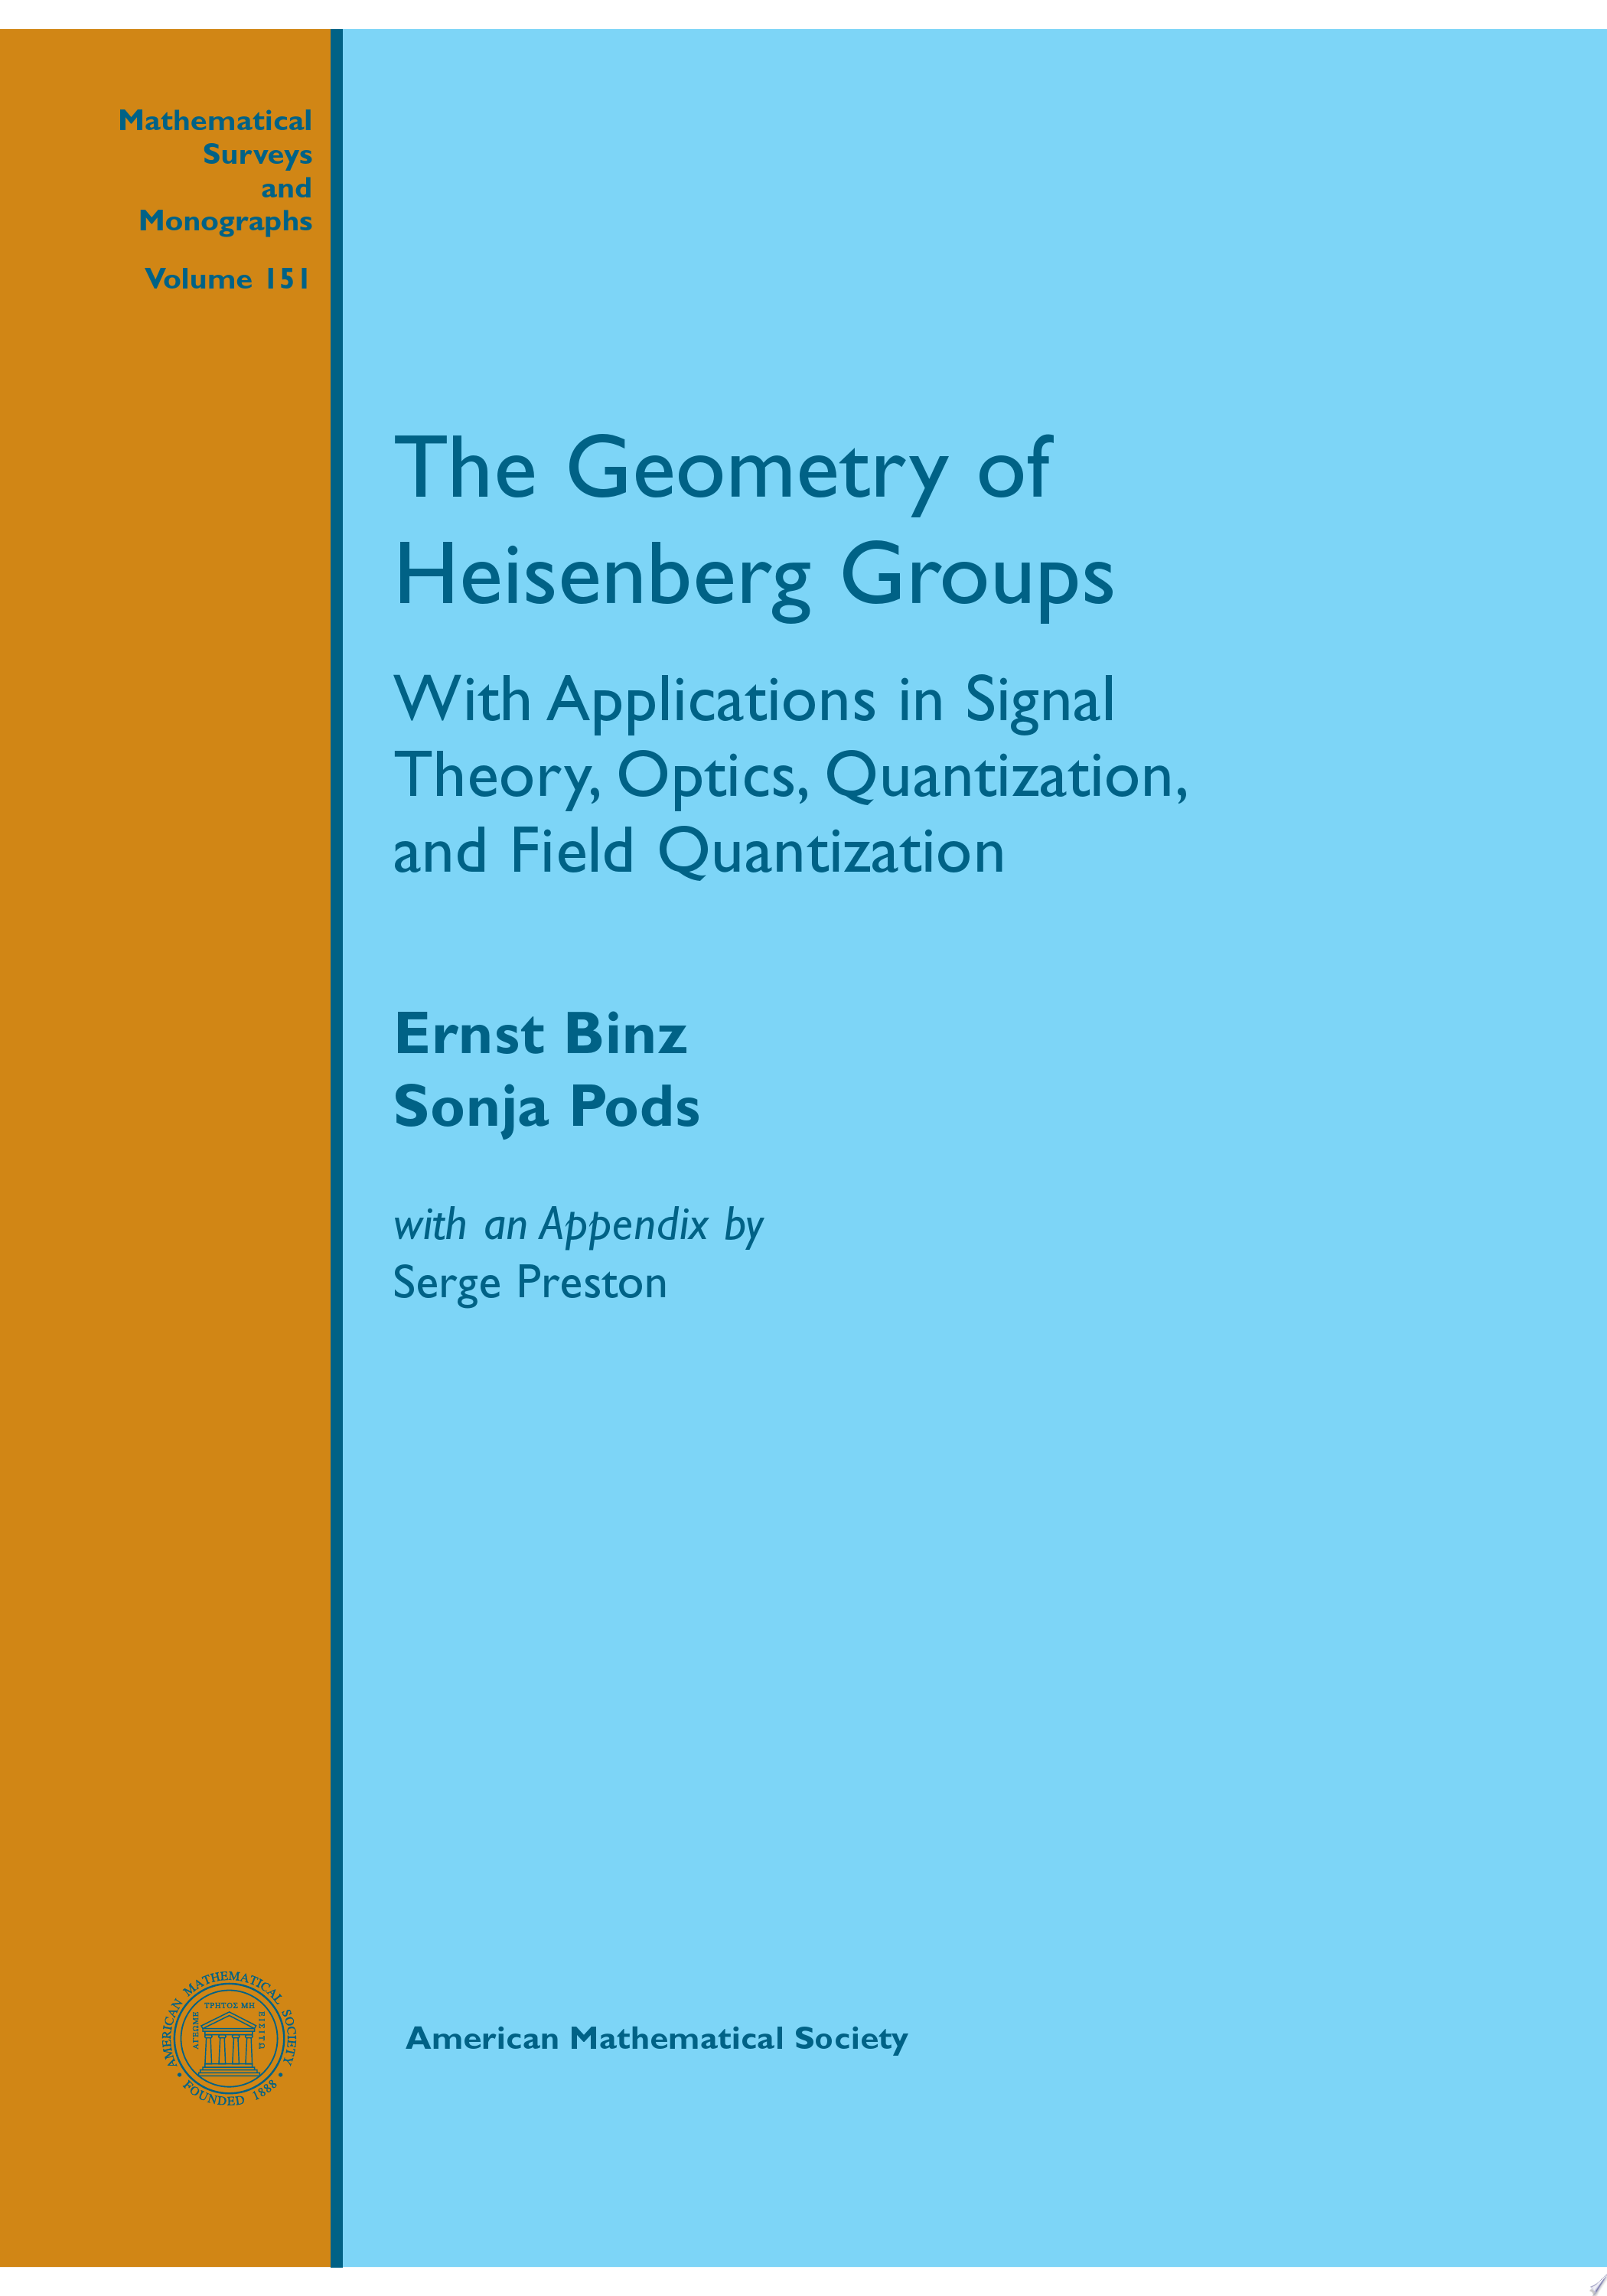 The Geometry of Heisenberg Groups